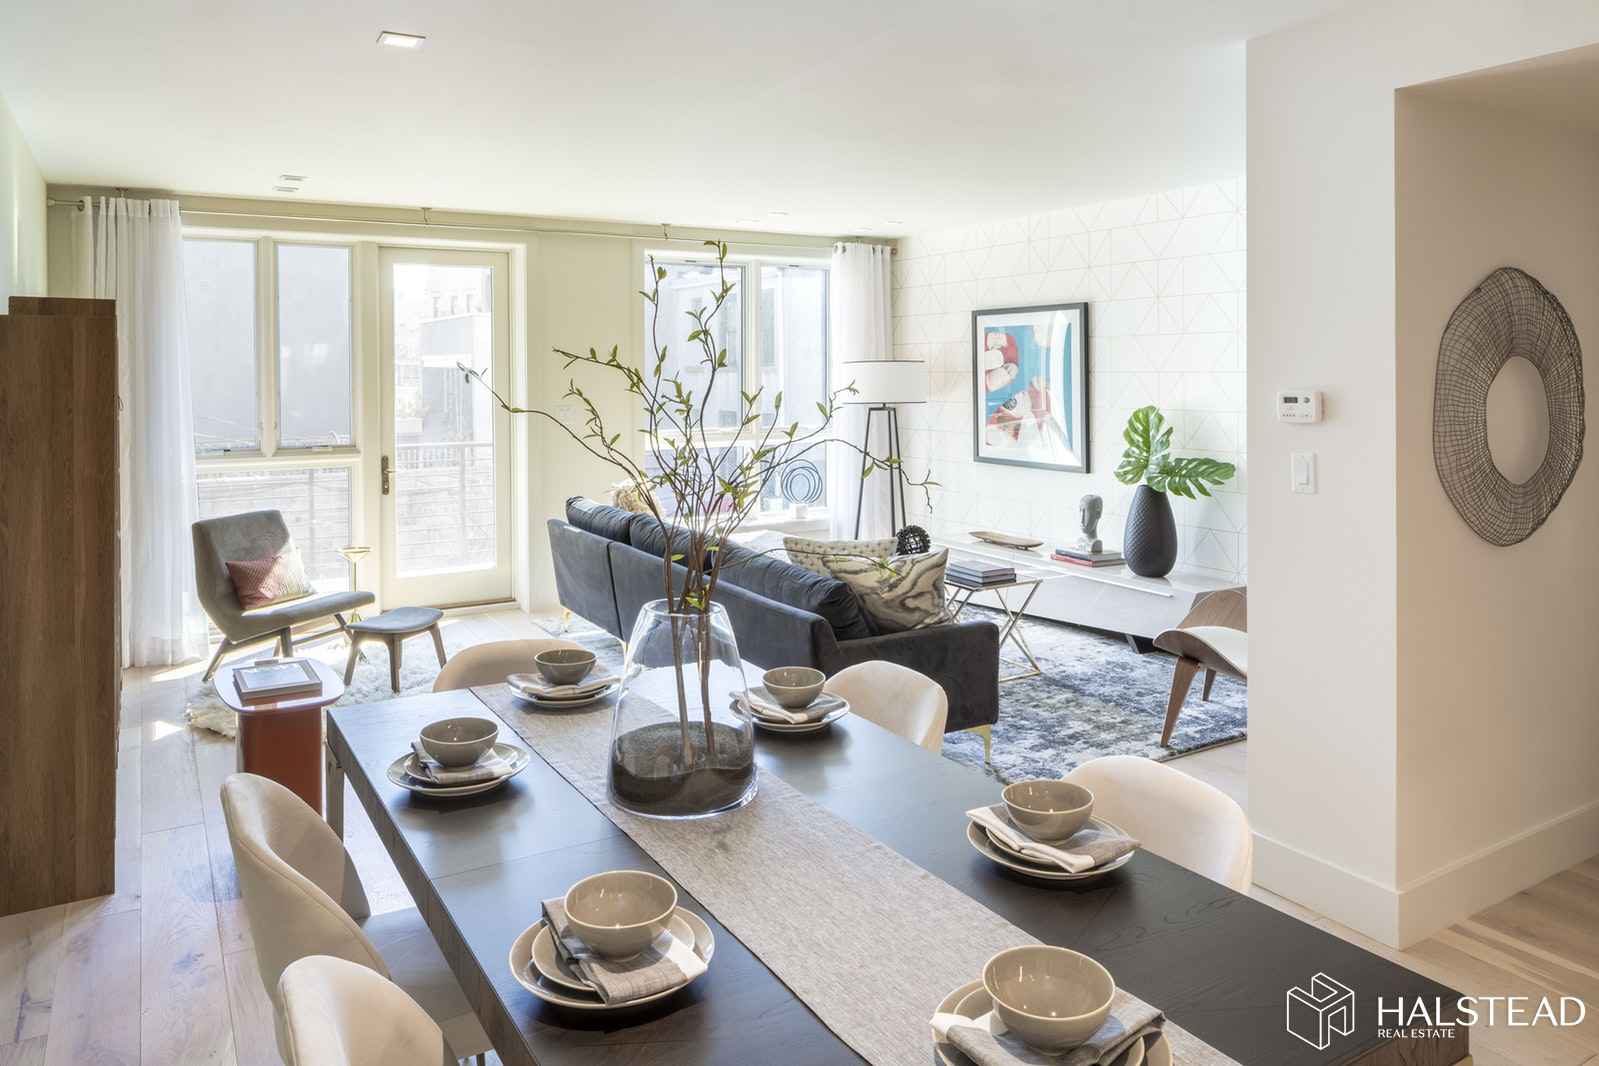 800 Dean Street 3, Prospect Heights, Brooklyn, NY, 11238, $1,949,000, Property For Sale, Halstead Real Estate, Photo 1